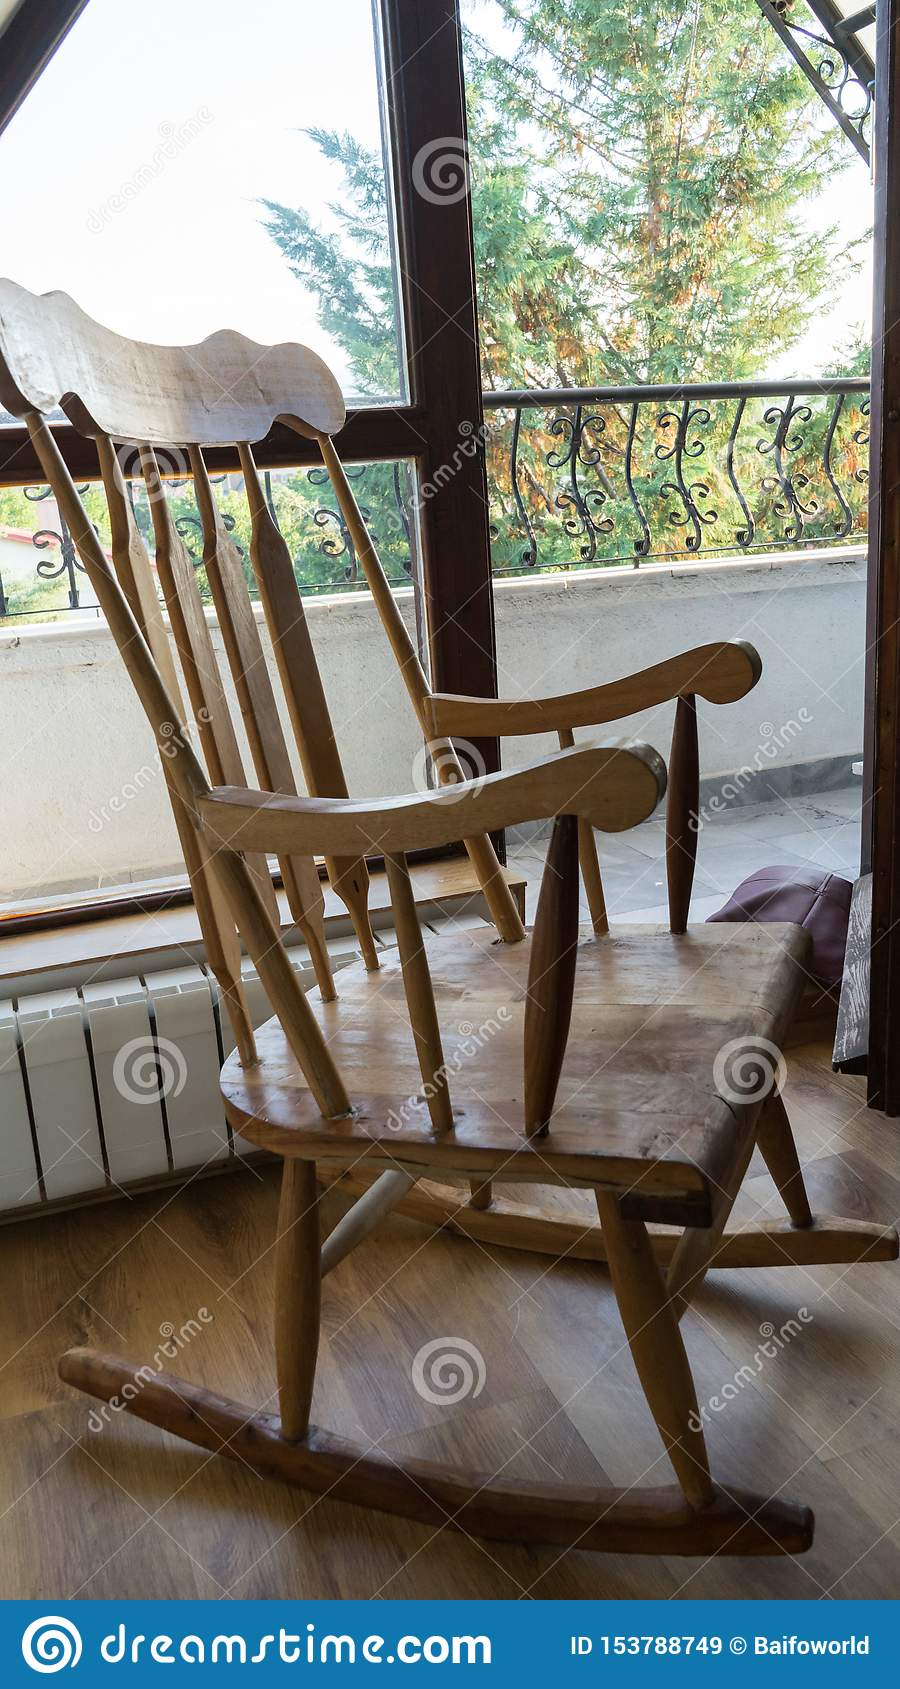 Tremendous Vintage Wood Rocking Chair On Deserted Old Attic Floor Gmtry Best Dining Table And Chair Ideas Images Gmtryco